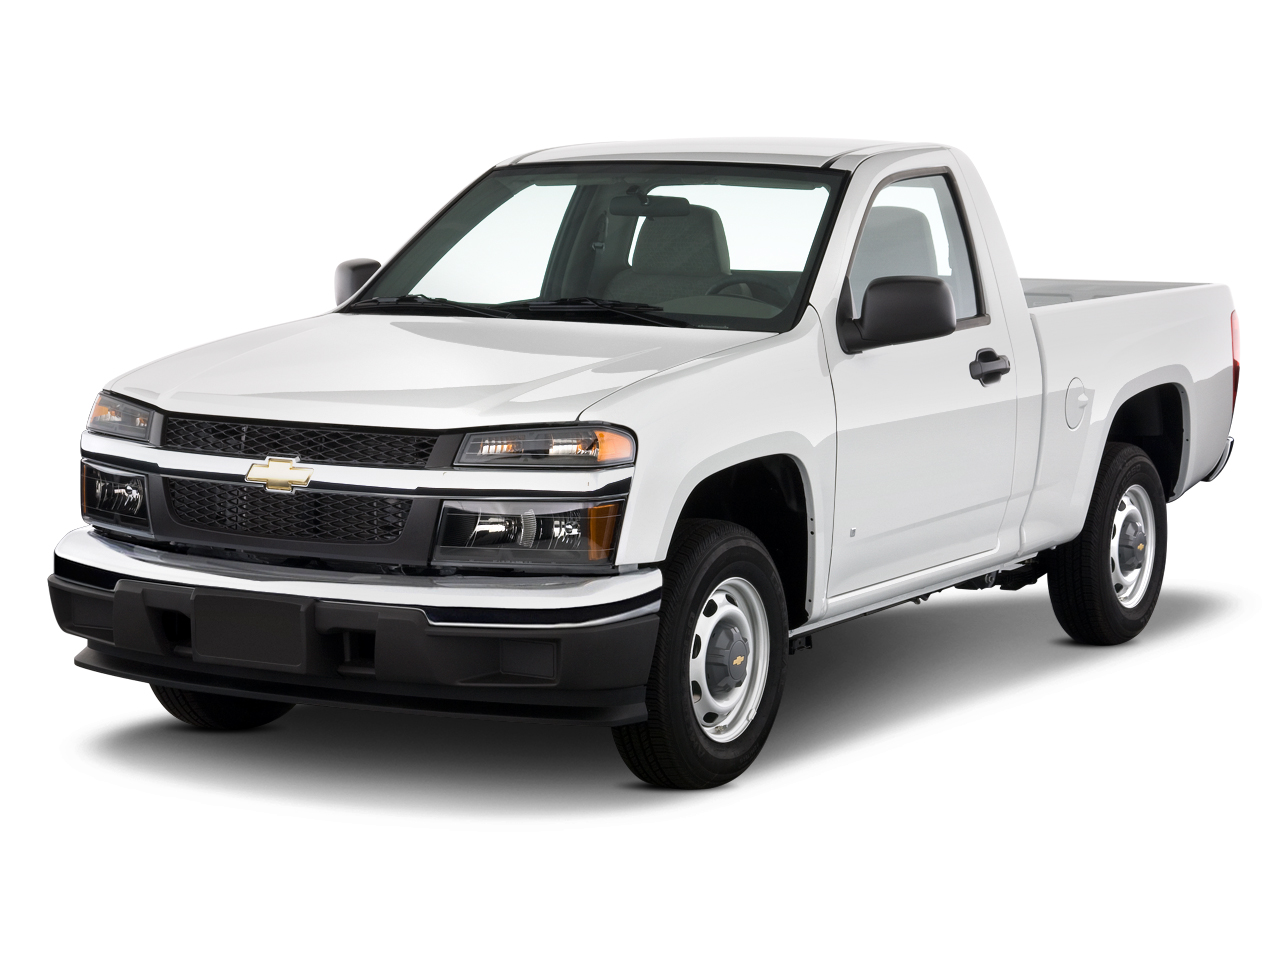 2011 Chevrolet Colorado Chevy Review Ratings Specs